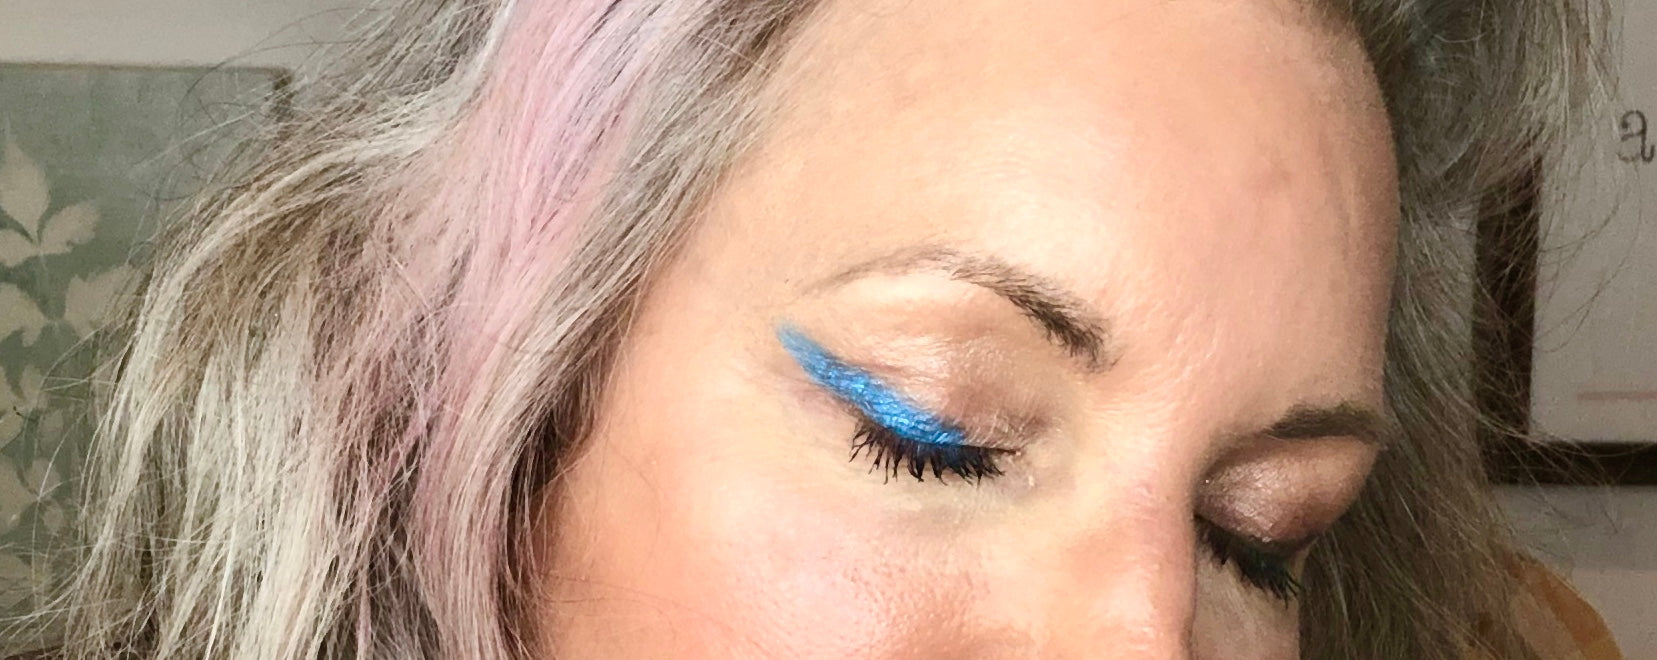 Simple Beauty Minerals - Blastin Blue Mineral Eyeshadow - simplebeautyminerals.com